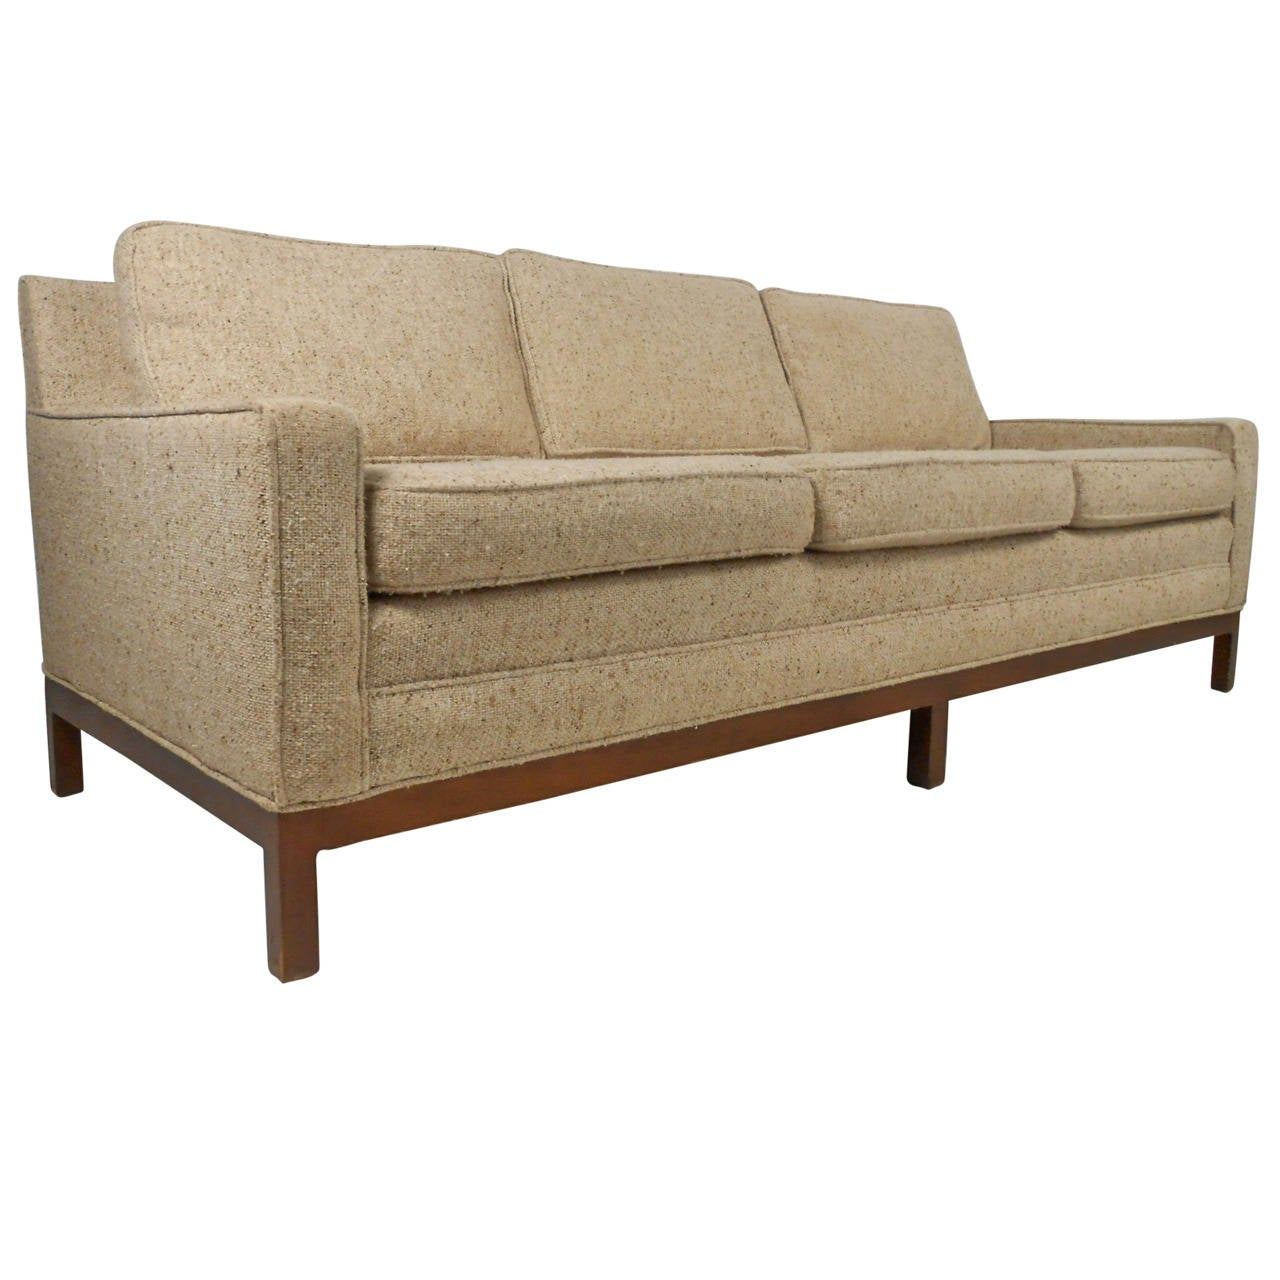 Stylish vintage modern sofa after florence knoll for sale for Modern sofas for sale